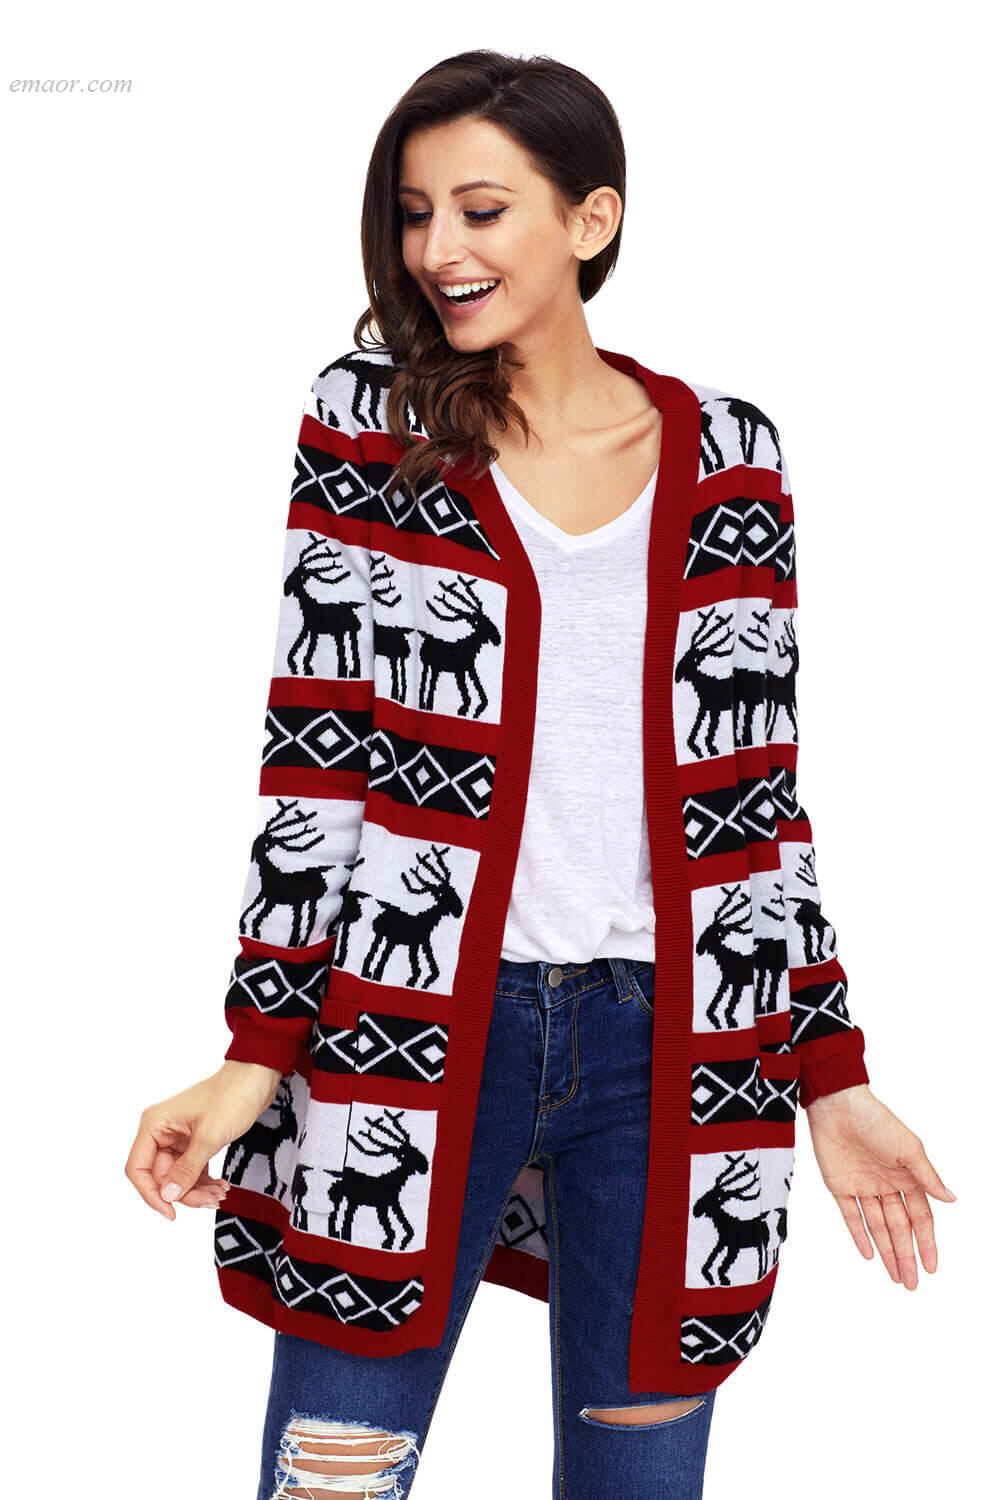 Fashionable Women's Outerwear Reindeer Geometric Christmas Cardigan Best Selling Outerwear Cooper Designer Outerwear